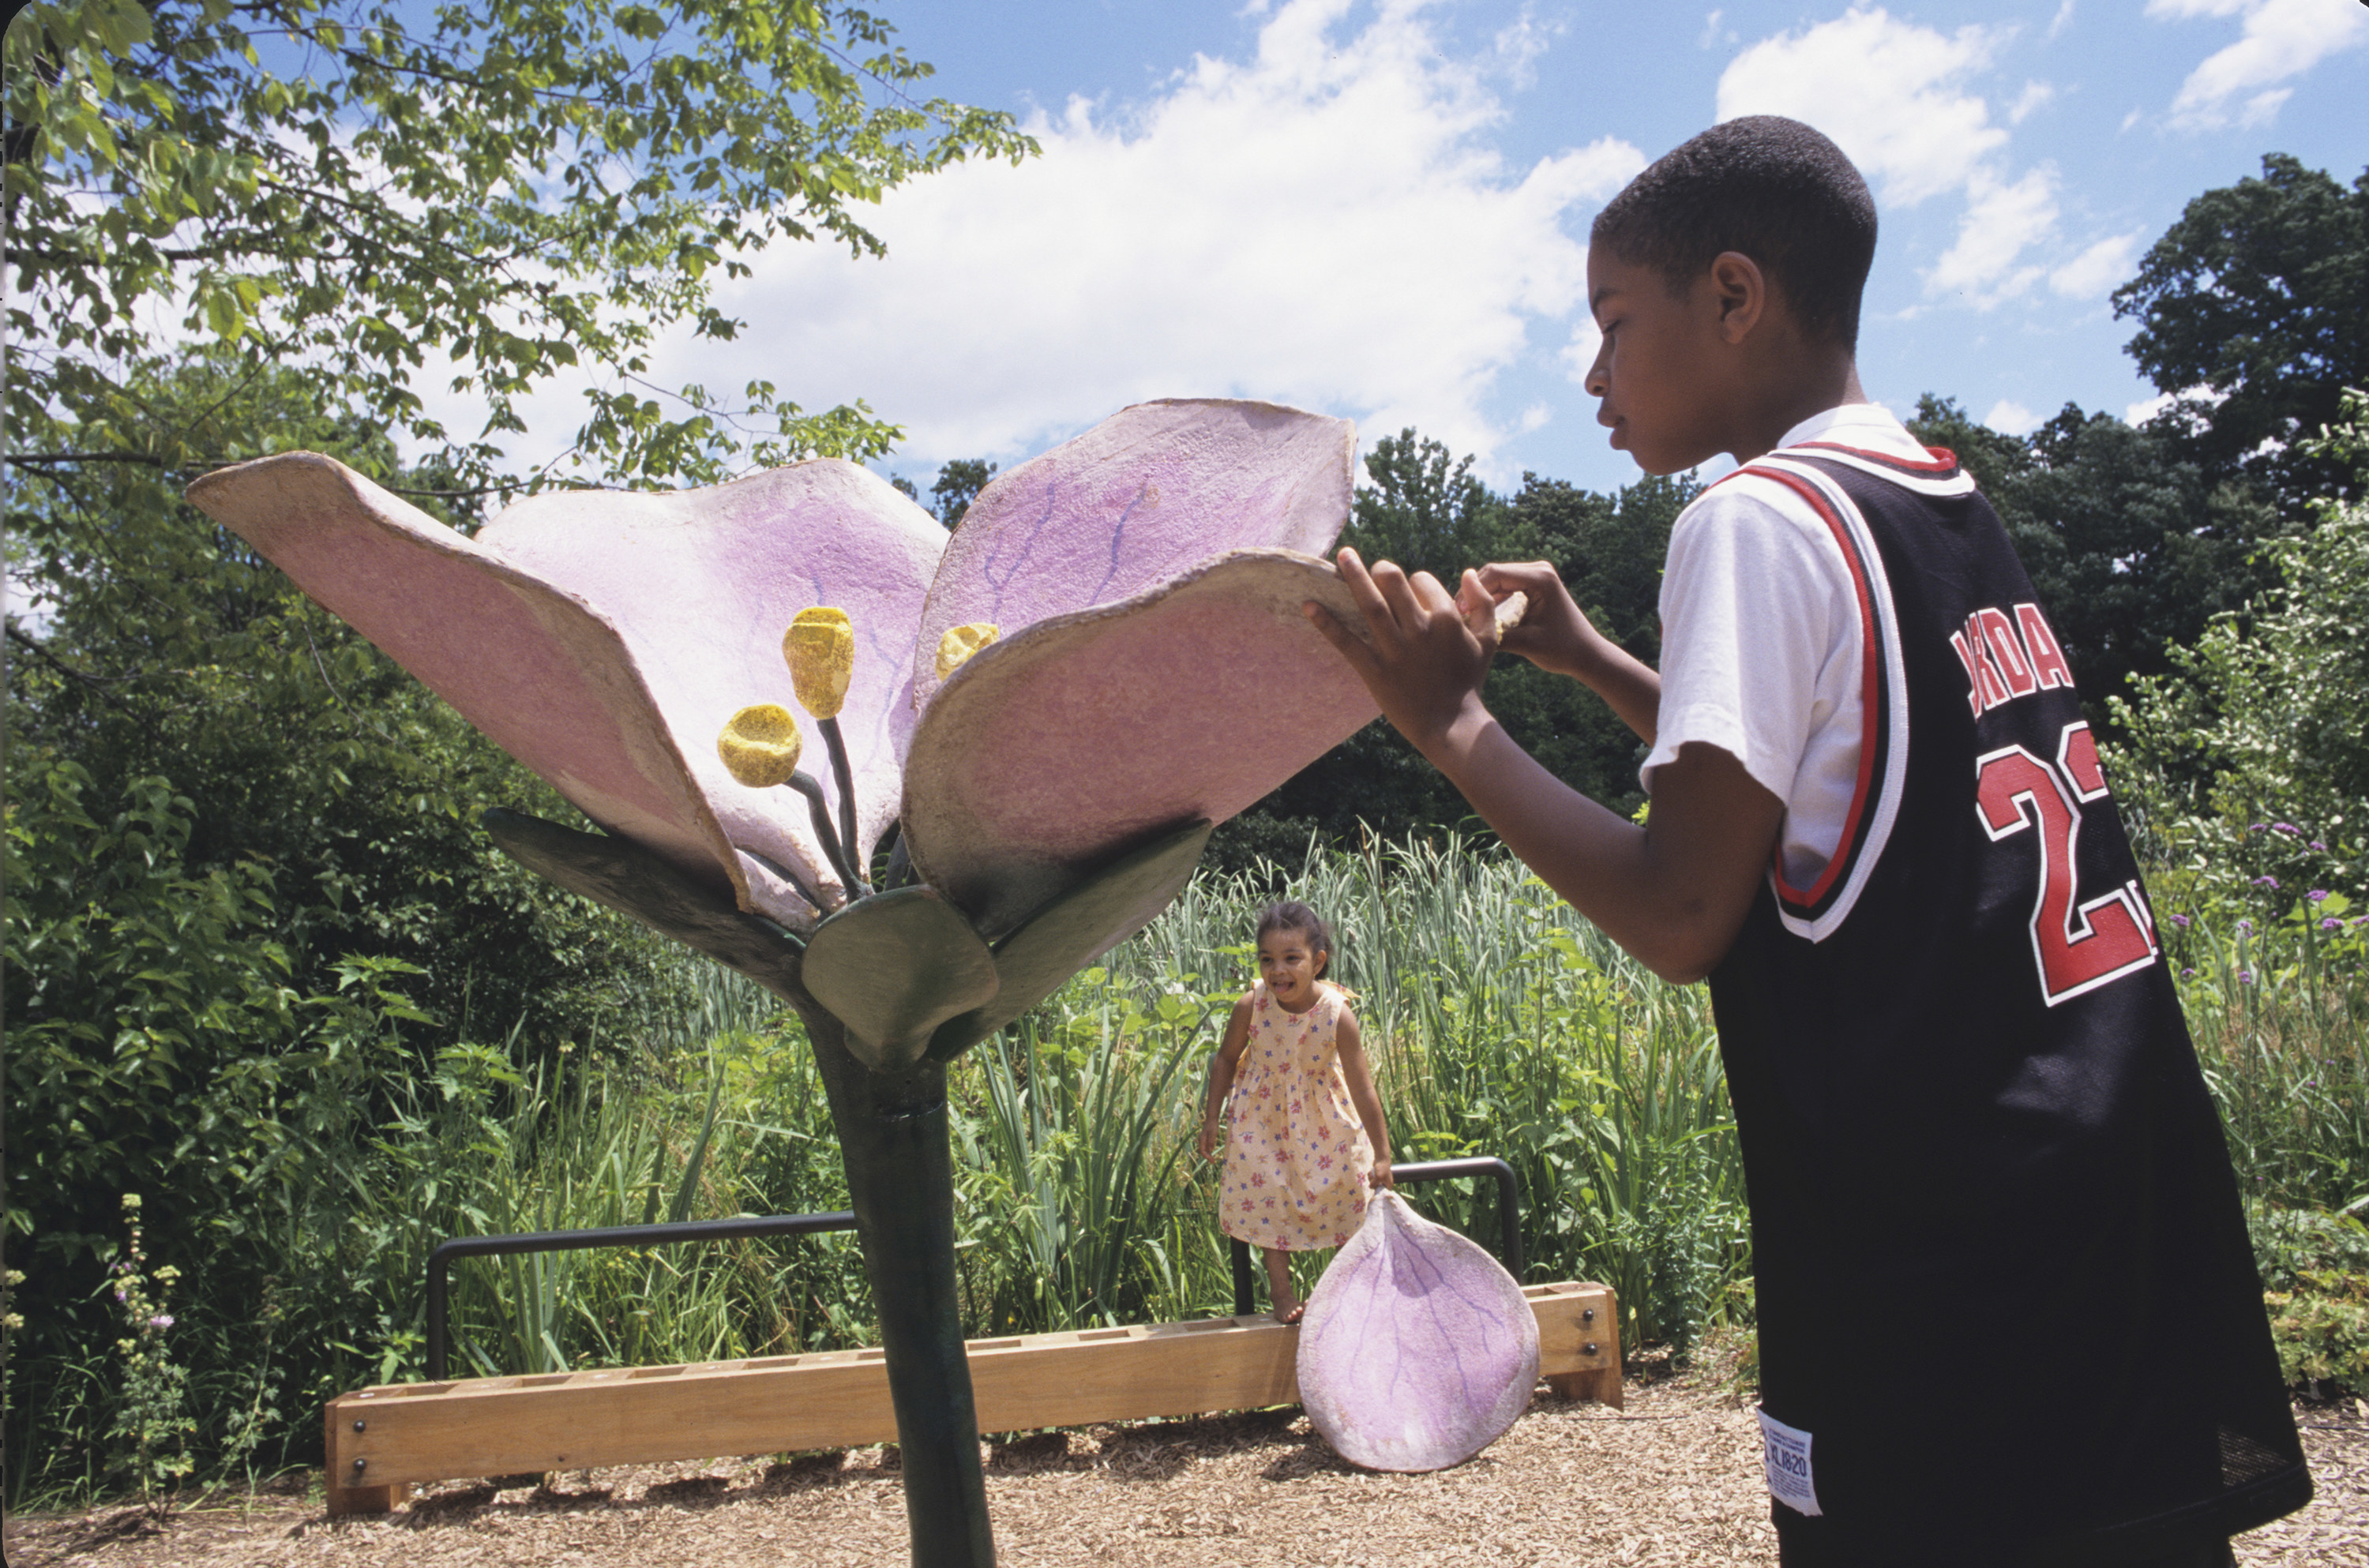 Two children play with novelty oversize flowers outside on a warm day